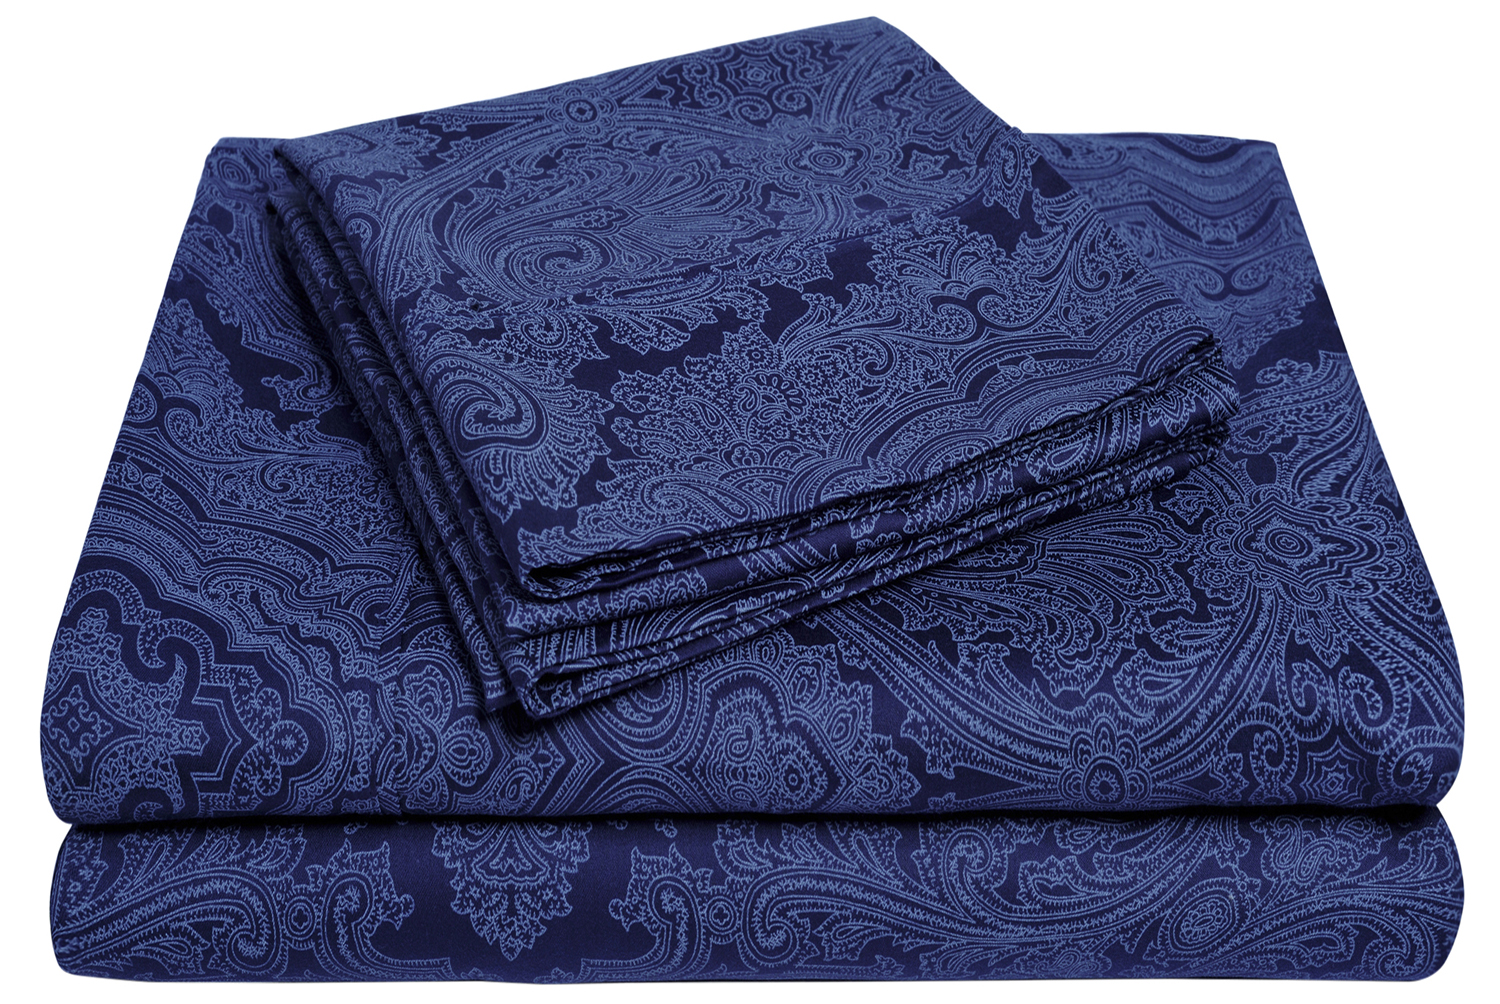 Stylish Italian Paisley Sheet Set With Deep Pocket 600